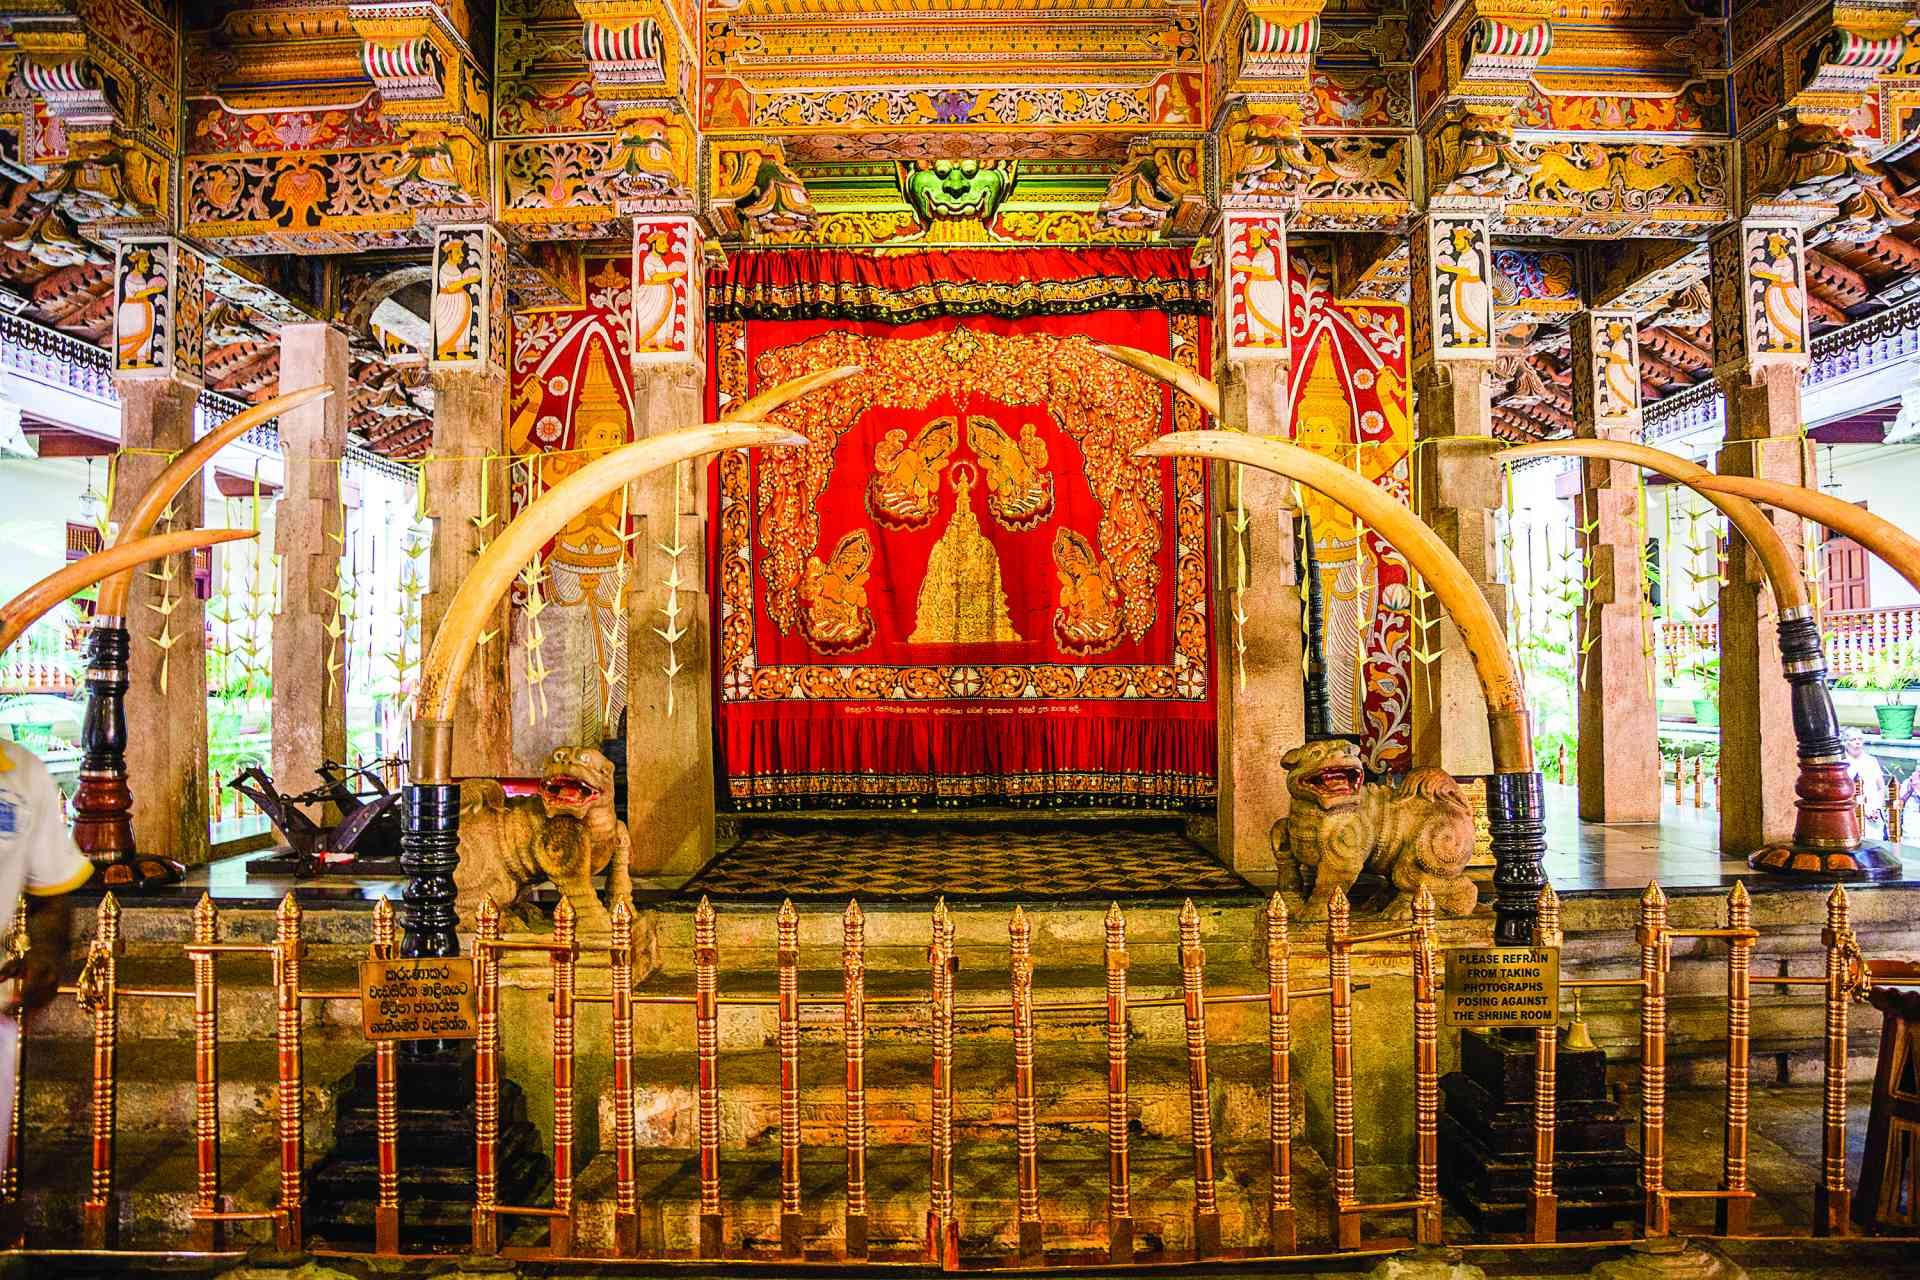 Temple of the Sacred Tooth Relic, Kandy, Sri Lanka by Graham Meale